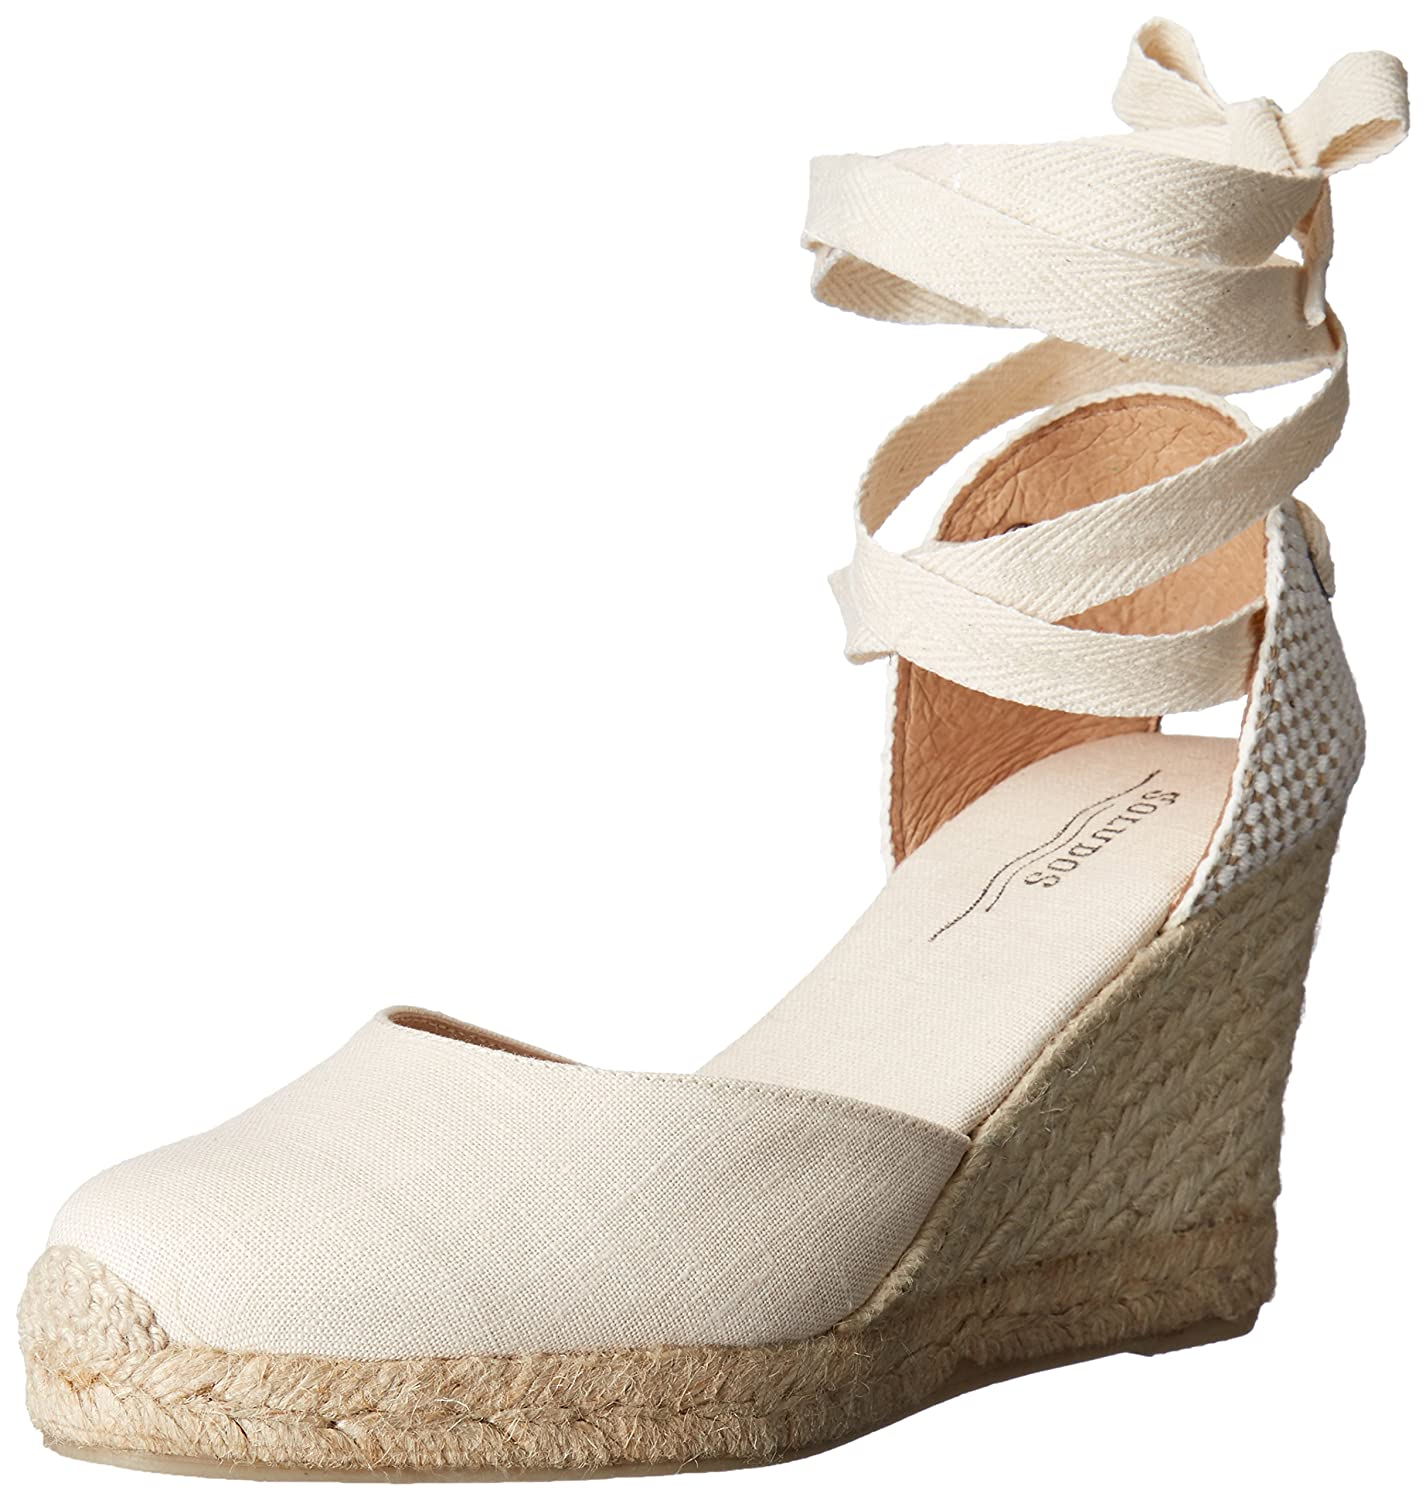 Soludos Women's Tall (90mm) Wedge Sandal B016ZQ5HT6 10 B(M) US|Blush